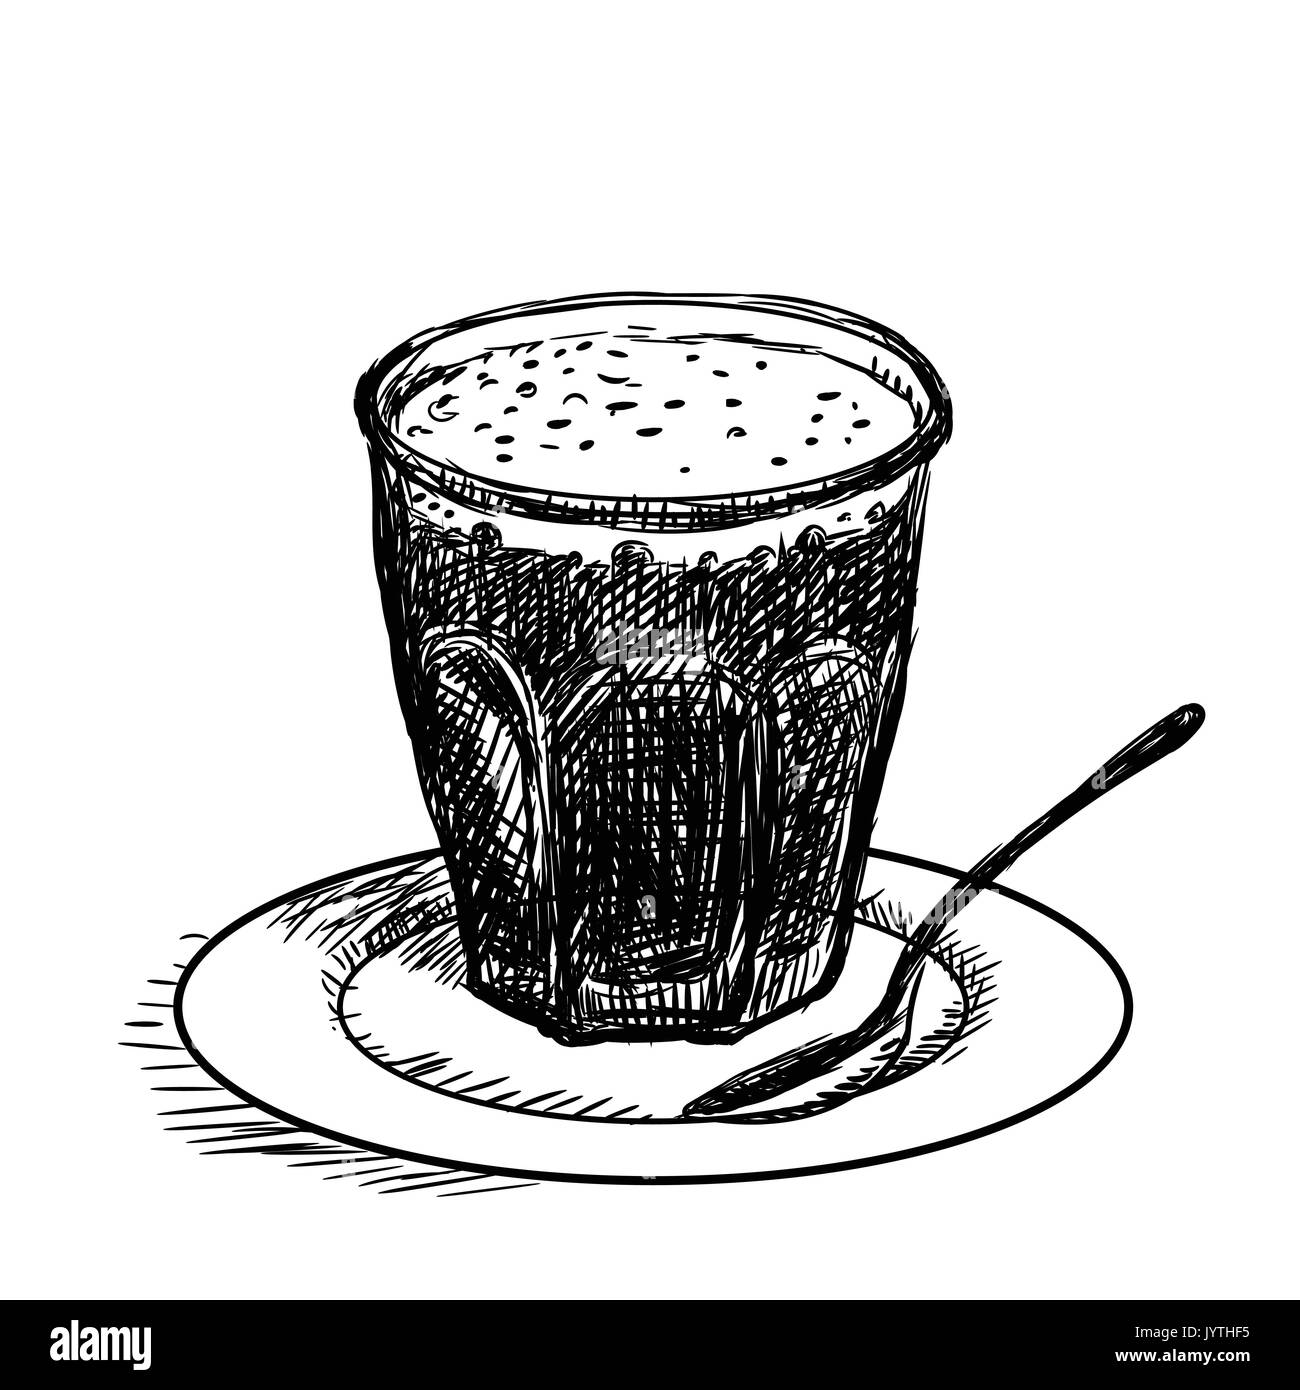 Coffee cup sketch - Hand Drawn Sketch Of Cup Of Coffee Black And White Simple Line Vector Illustration For